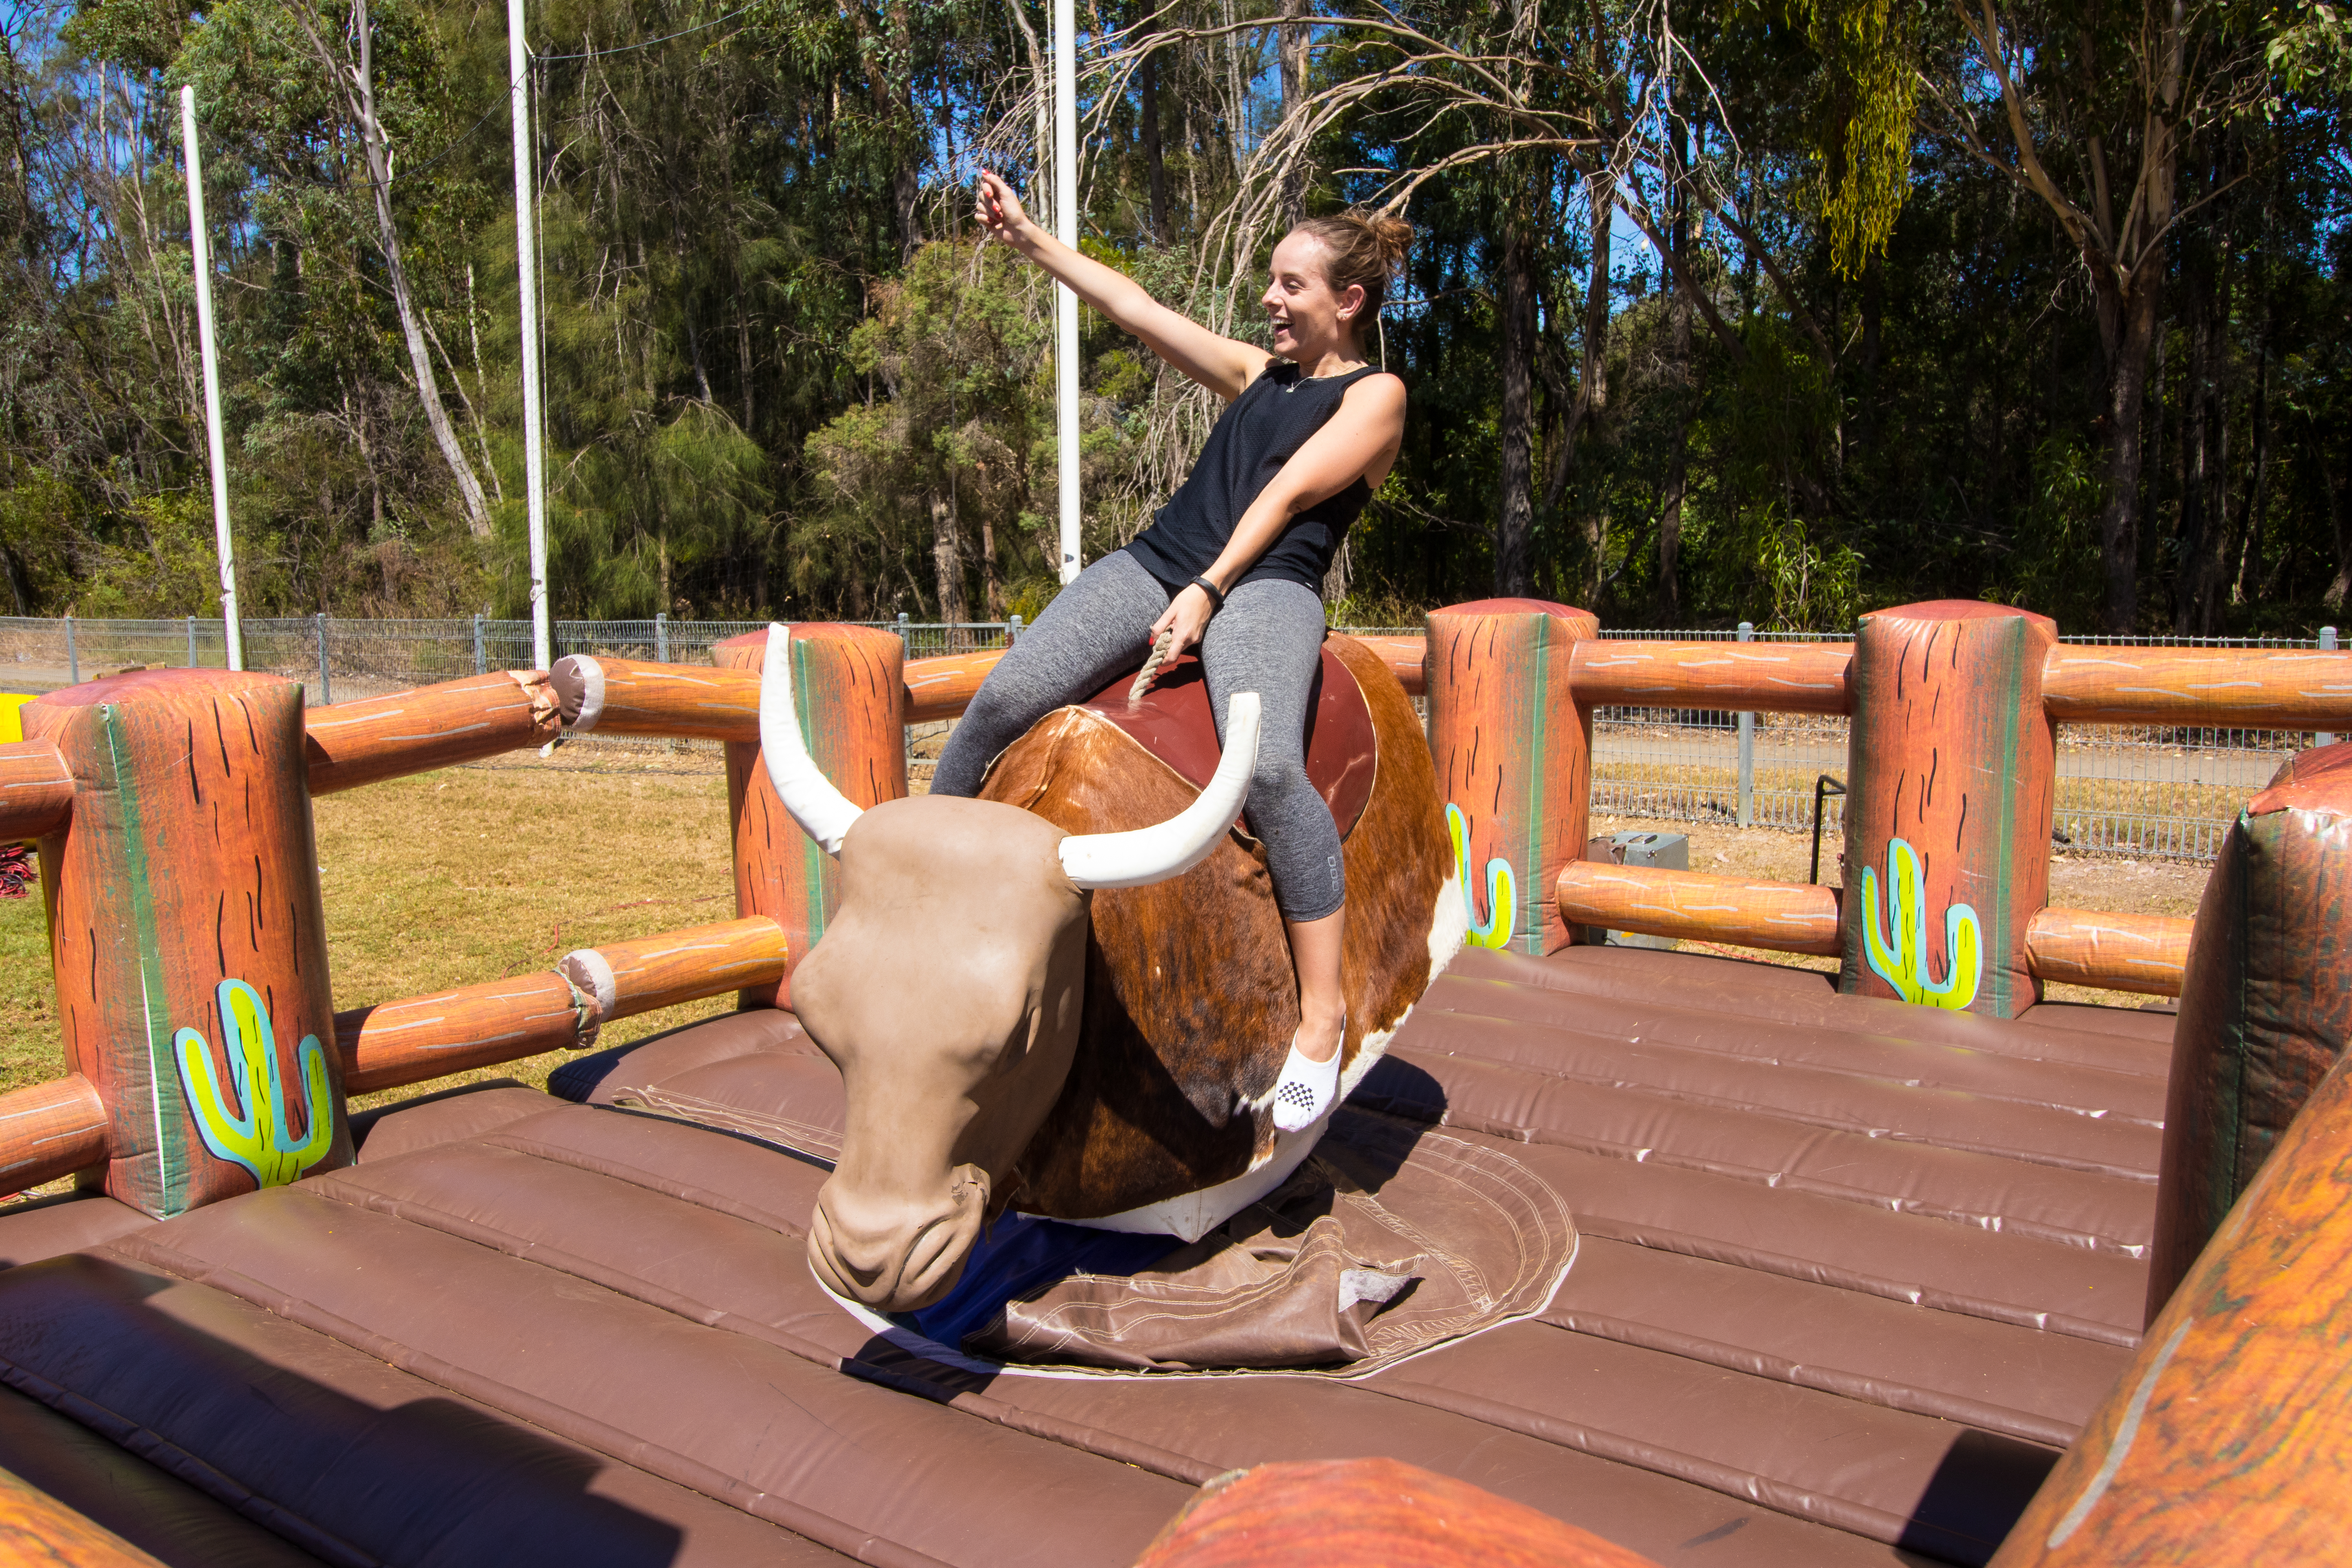 Mechanical Bull Ride for hire Sydney